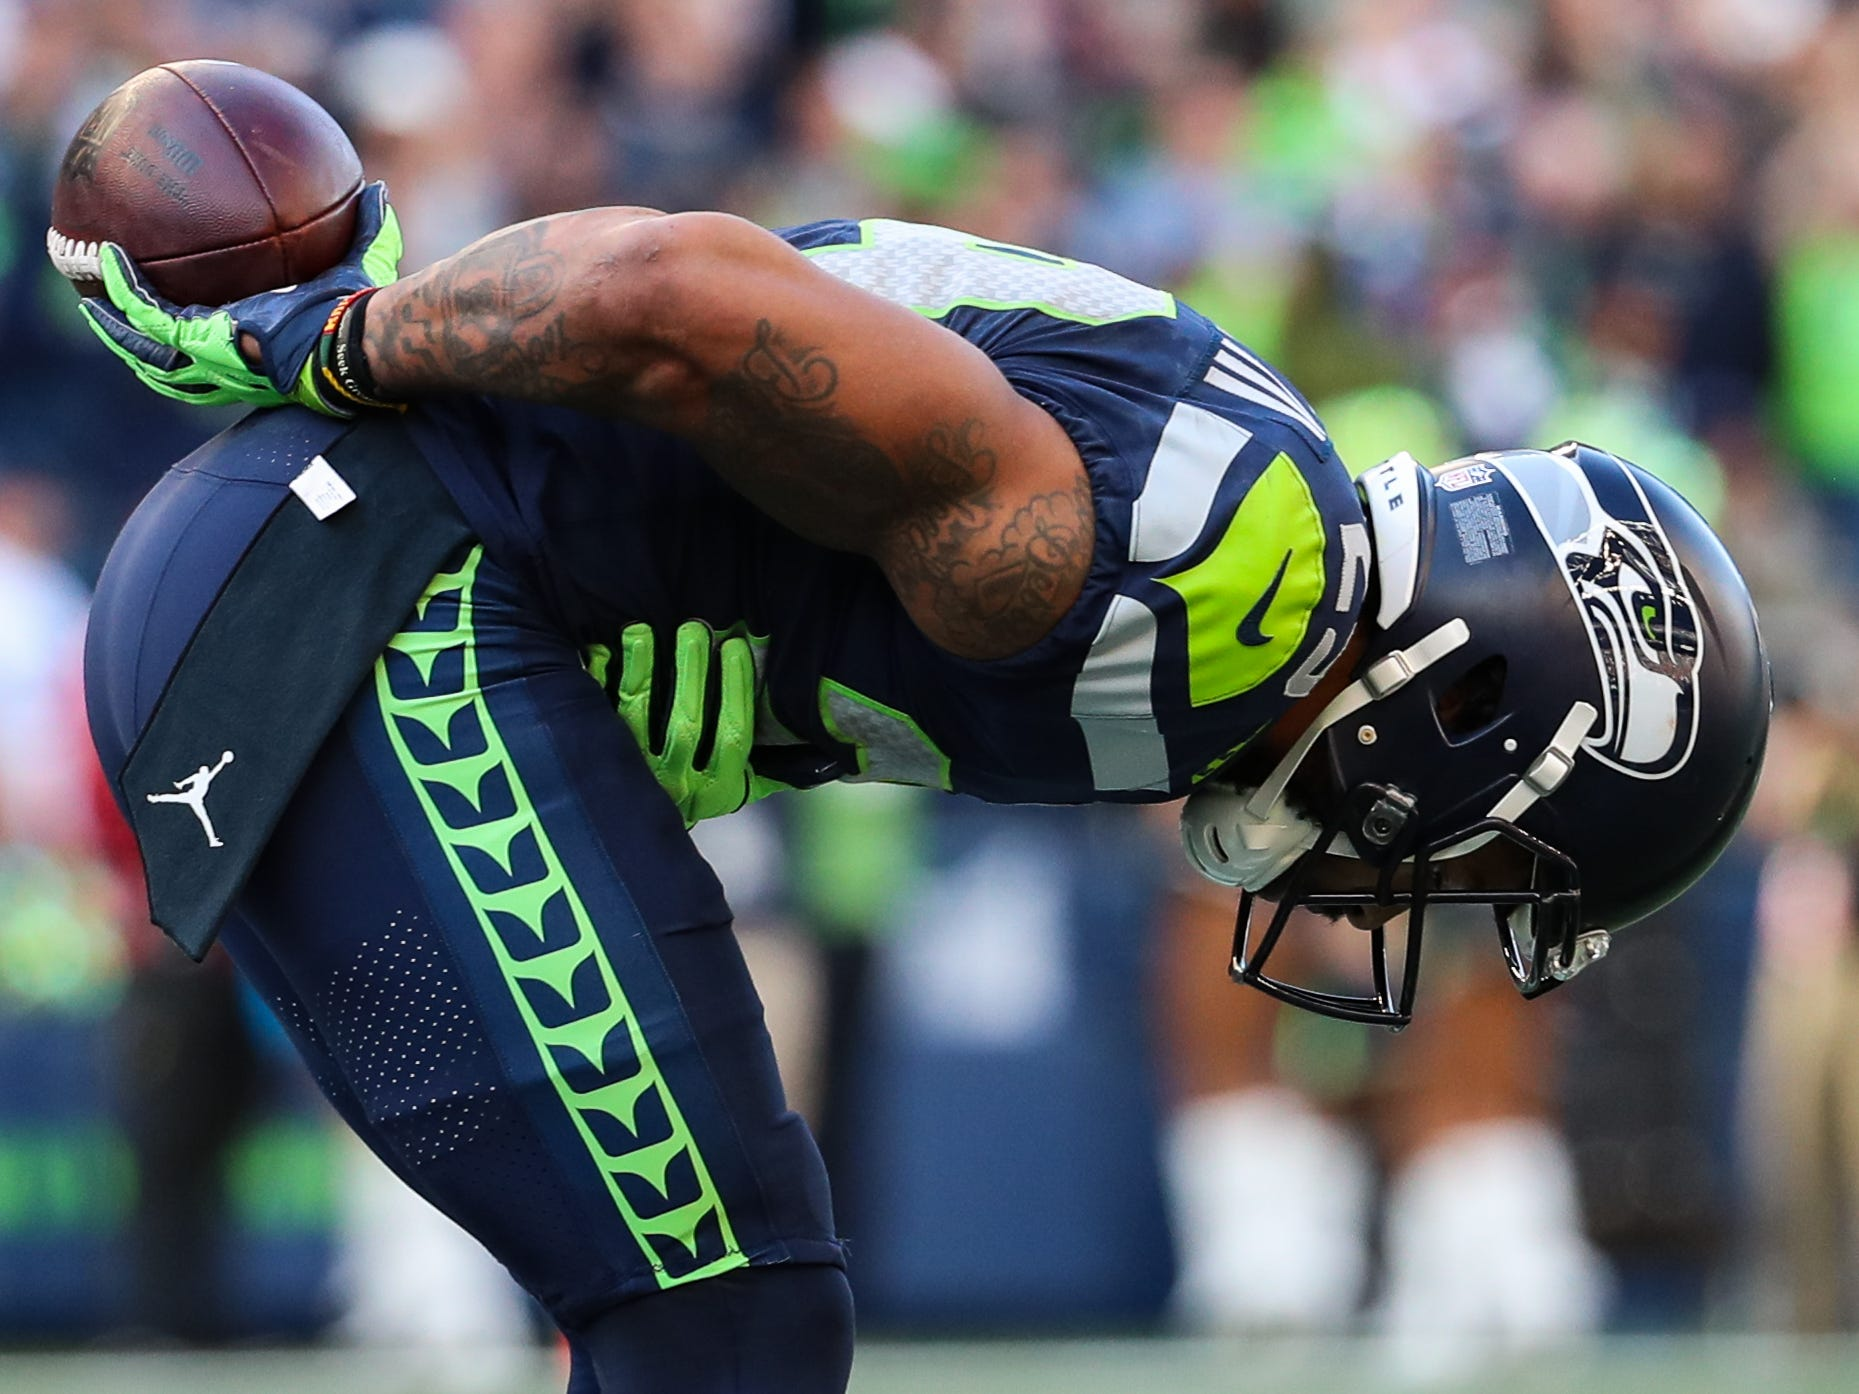 "Earl Thomas, S, Seattle: Thomas is one of the greatest safeties to ever play the game, but his value is held back by his age (30) and the broken leg he suffered last season. Again, the Lions don't ""need"" a safety, but if Thomas' price tag falls into a range they're comfortable spending, he makes any defense better. He's thrived covering the deep middle in Seattle's Cover-3, one of Patricia's favorite coverages."